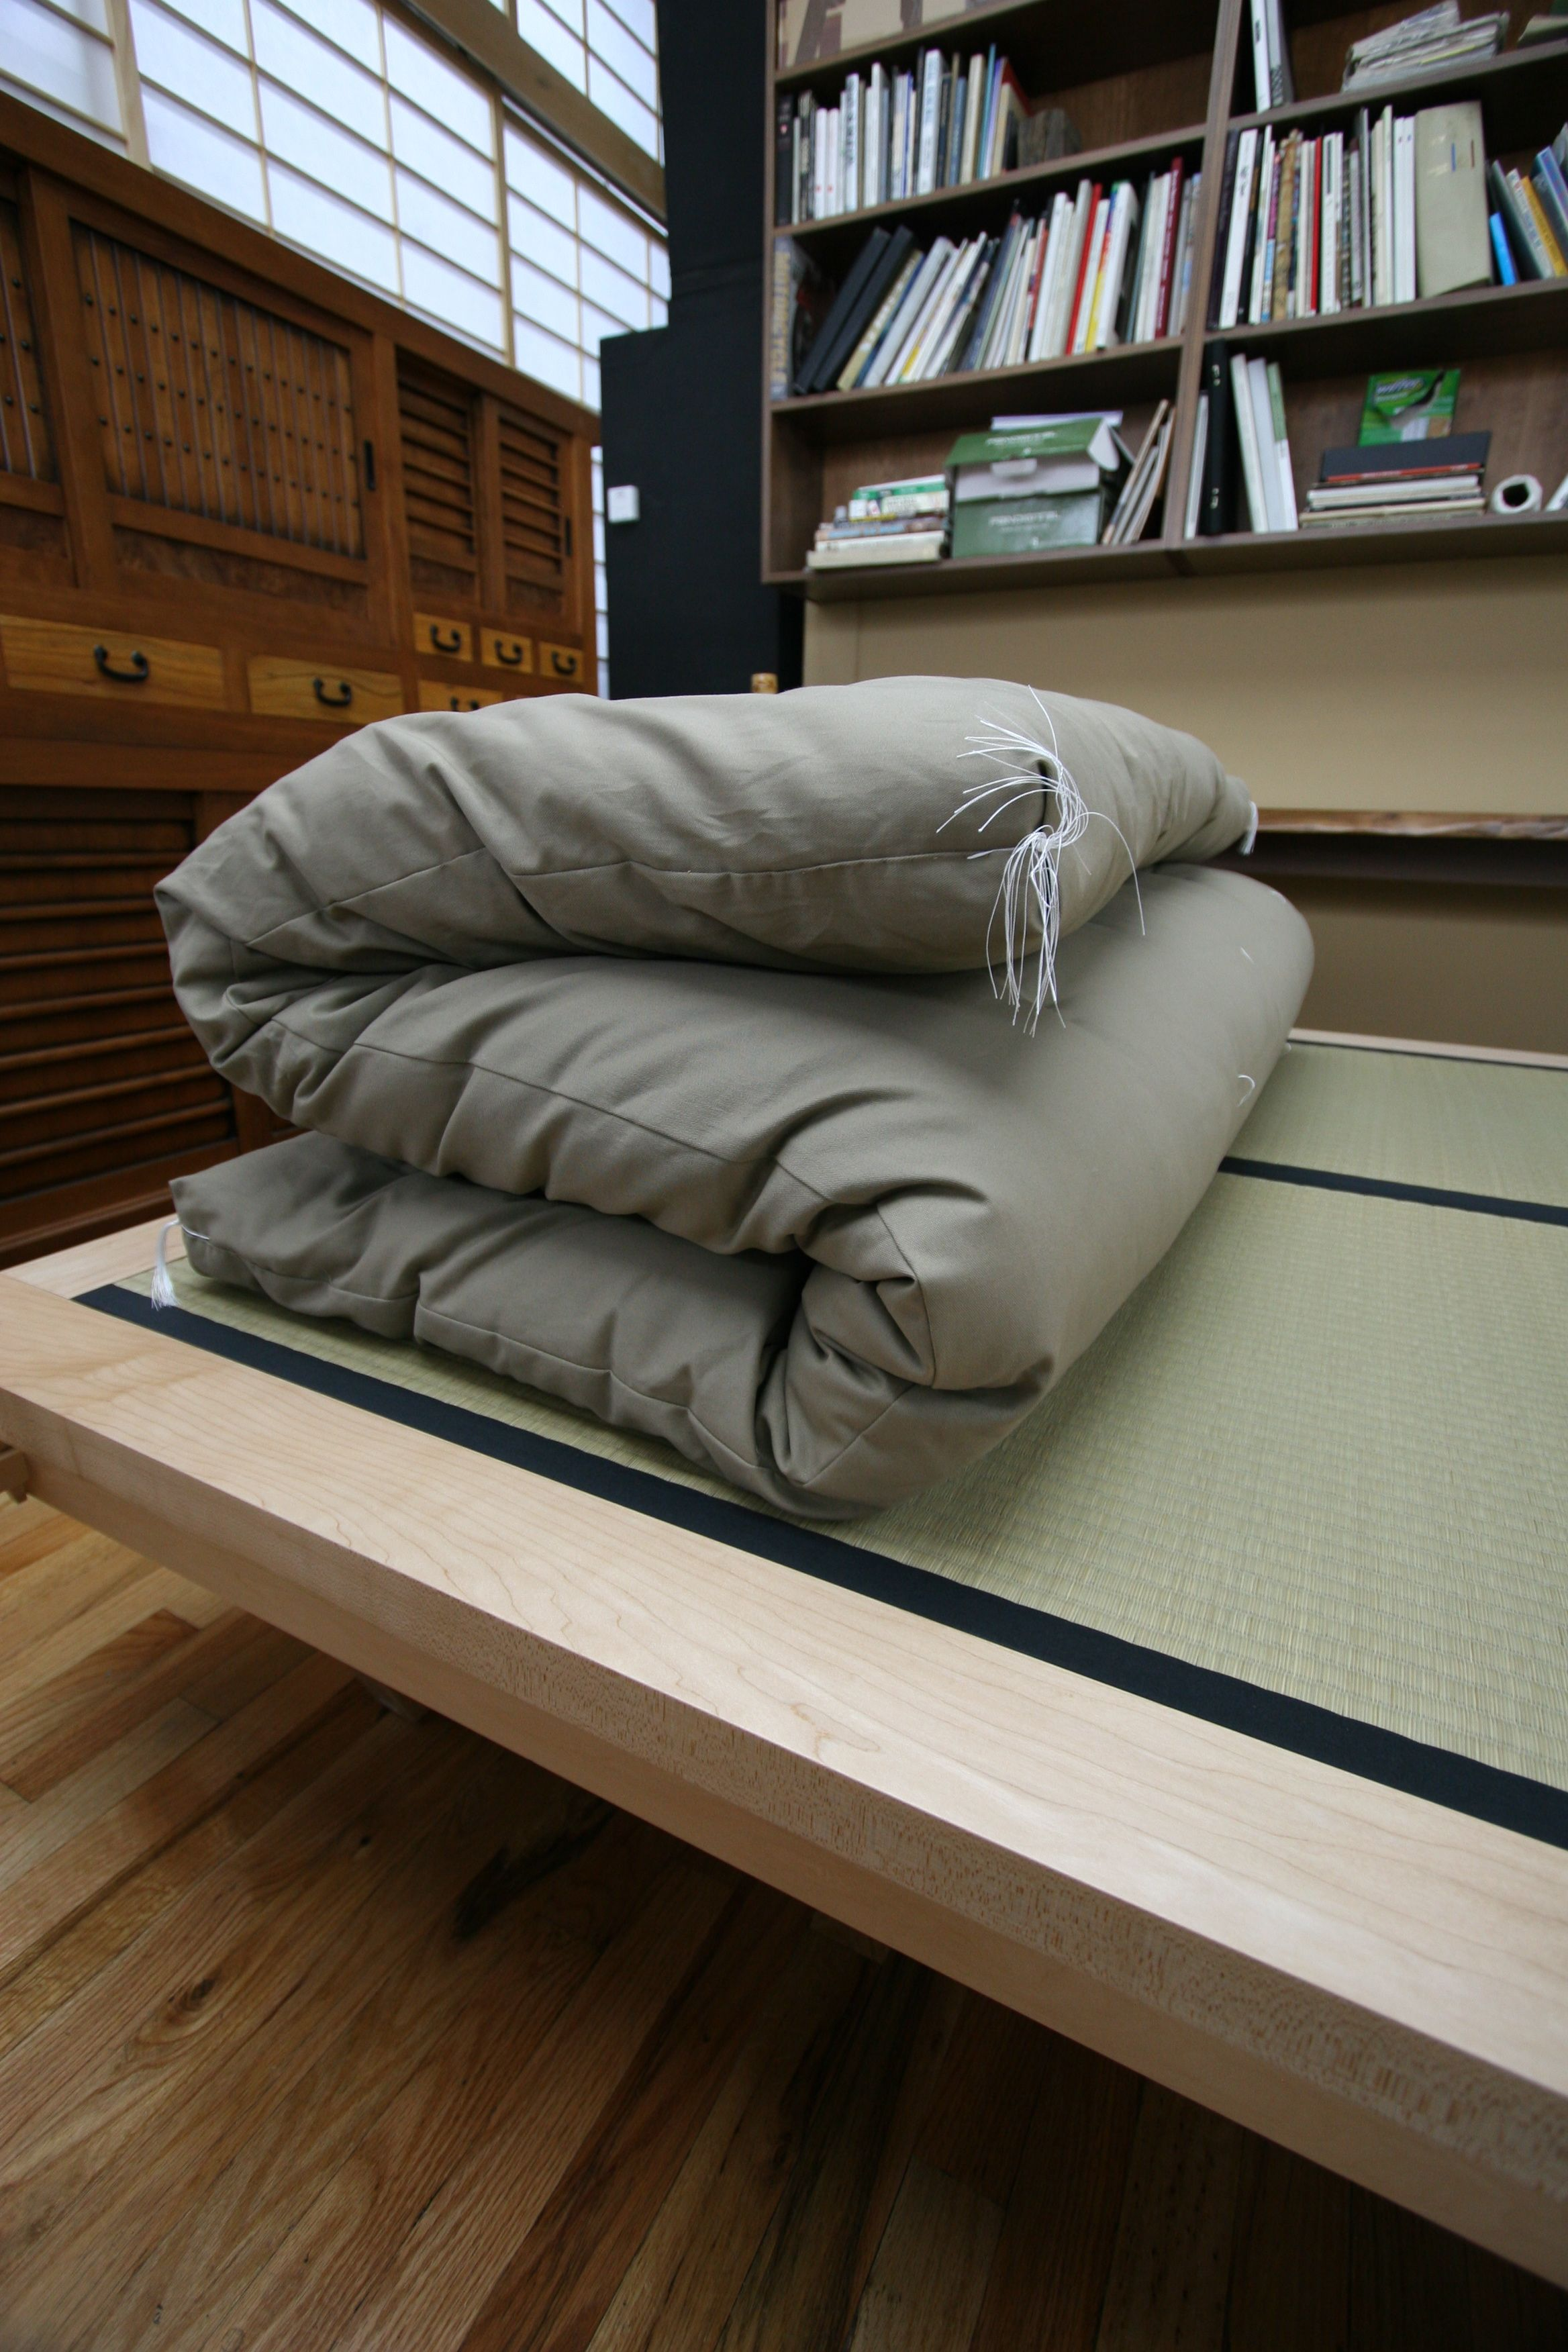 Japanese Futon And Tatami An Alternative To Western Mattress Better For Your Back Too